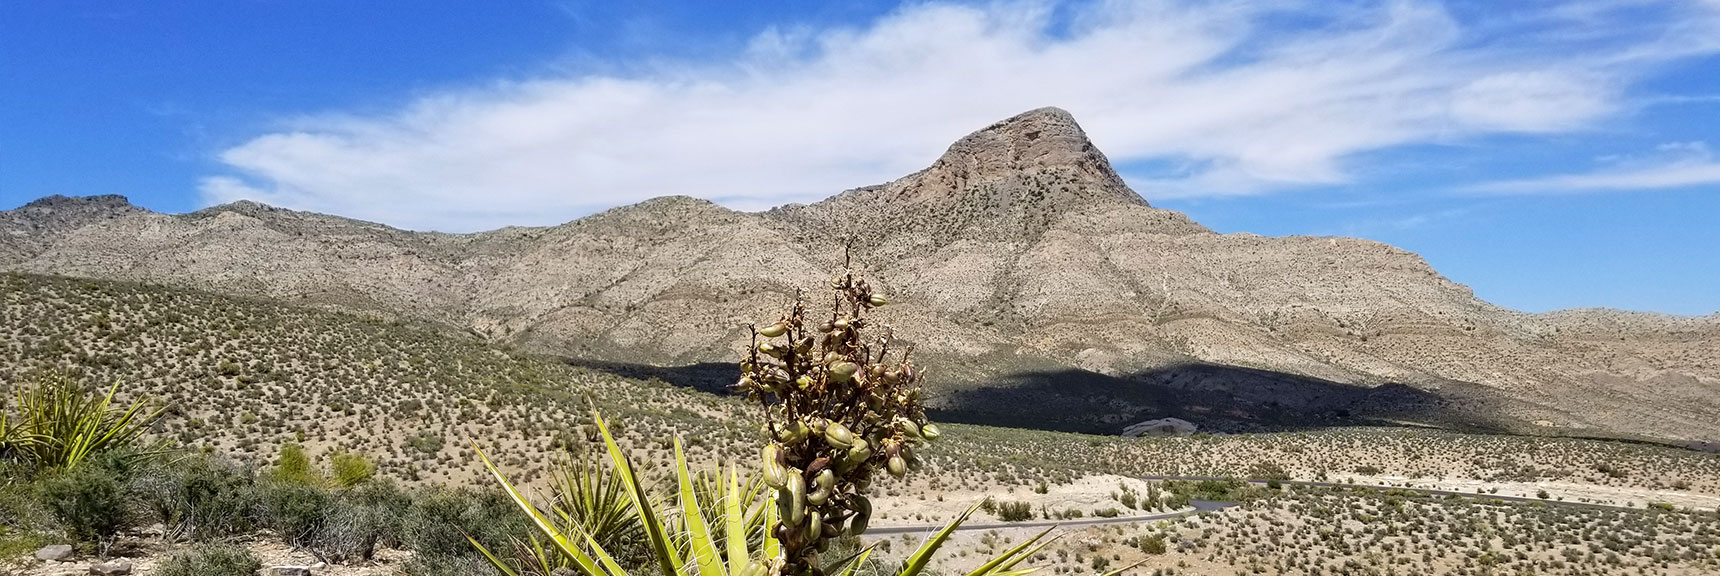 Red Rock National Park View of Turtlehead Peak from Top of Scenic Drive